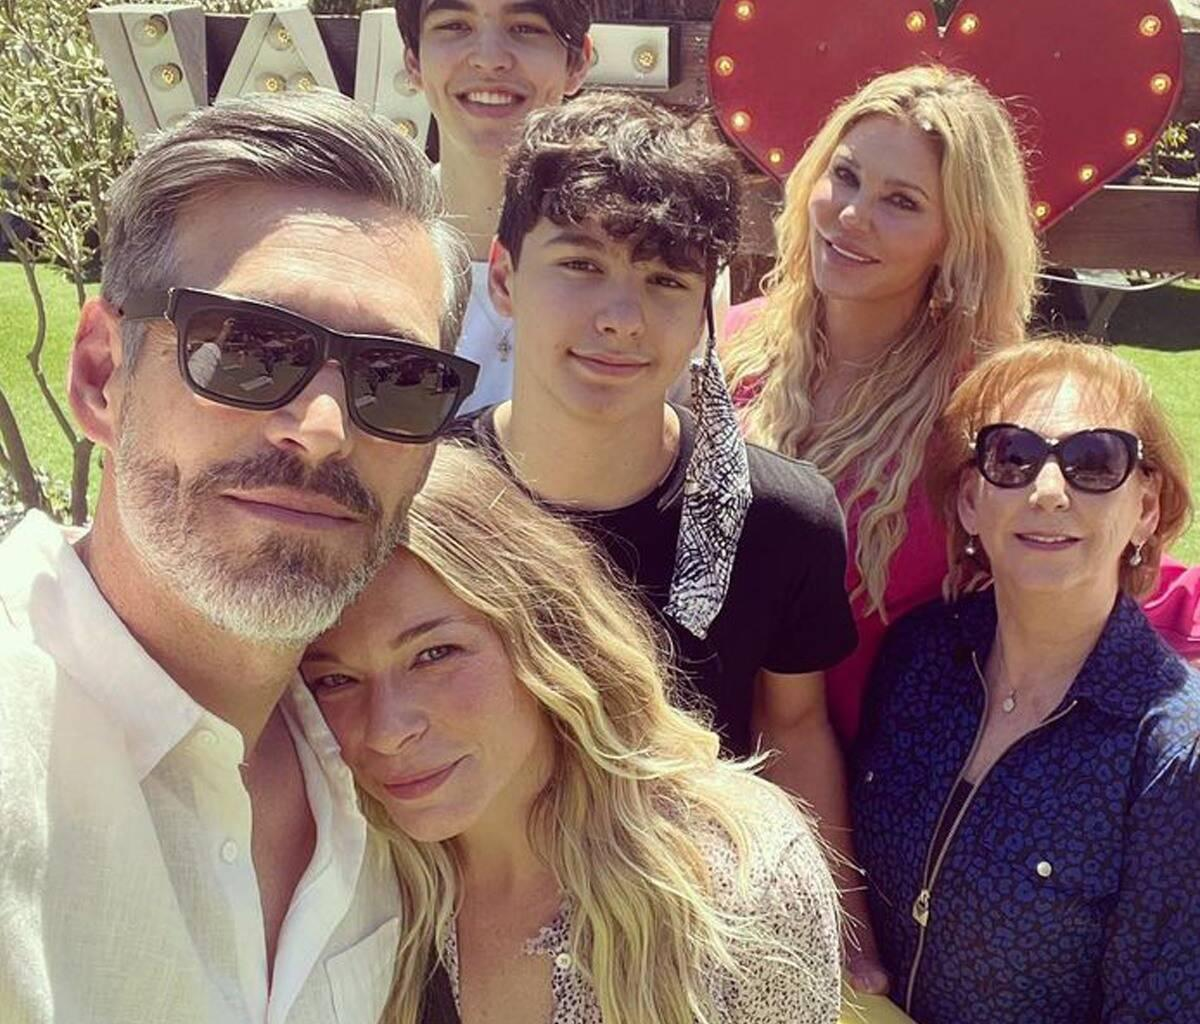 Brandi Glanville Confesses She 'Really Wanted To Kill' LeAnn Rimes After Eddie Cibrian Cheated With Her!